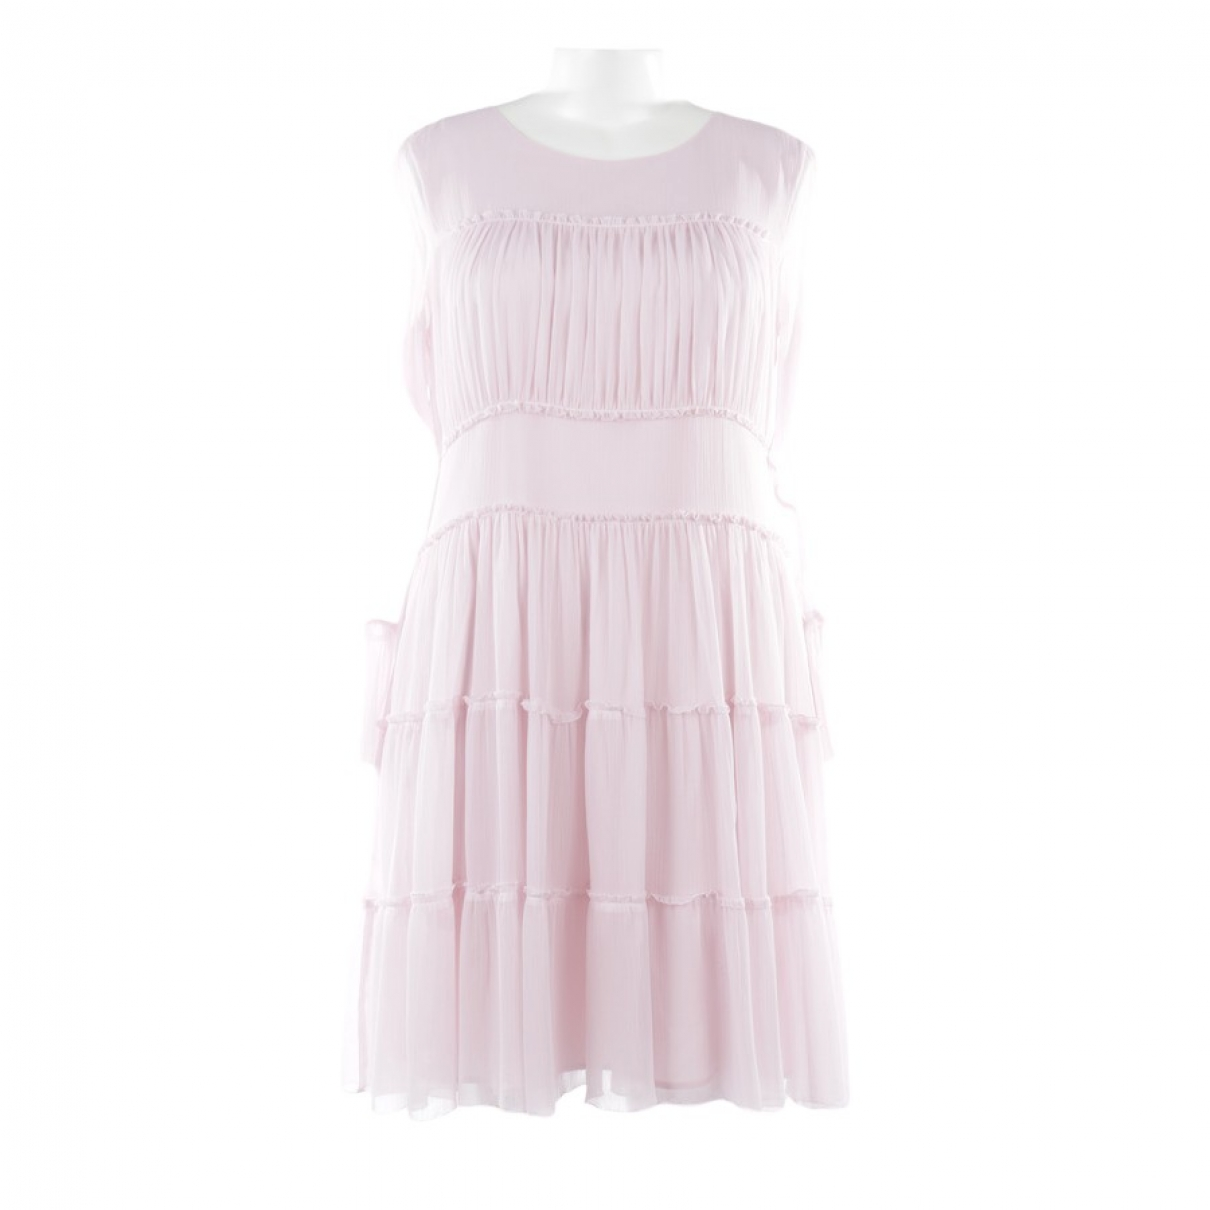 Marc Cain \N Pink dress for Women 44 FR